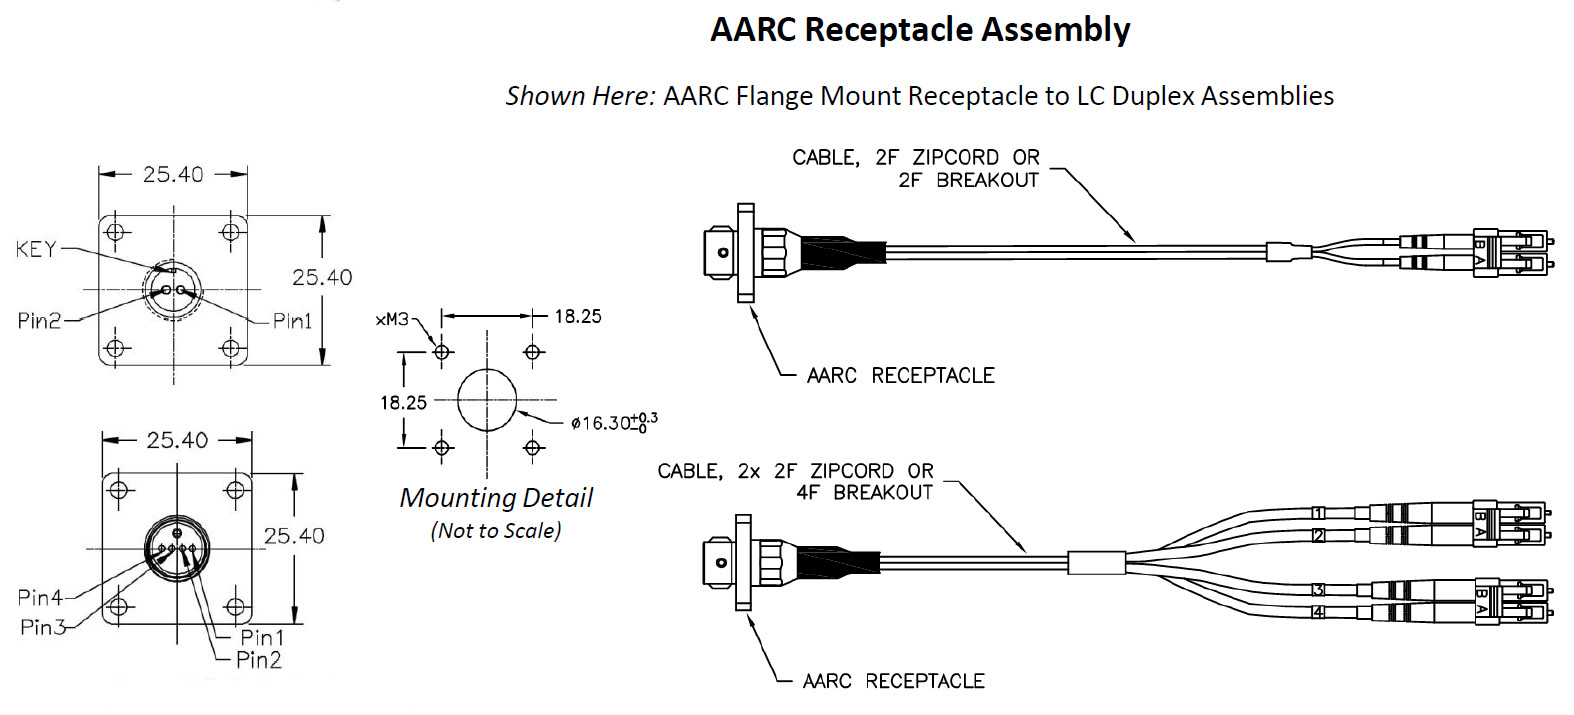 AARC Flang Mount Receptacle to LC Duplex Assemblies